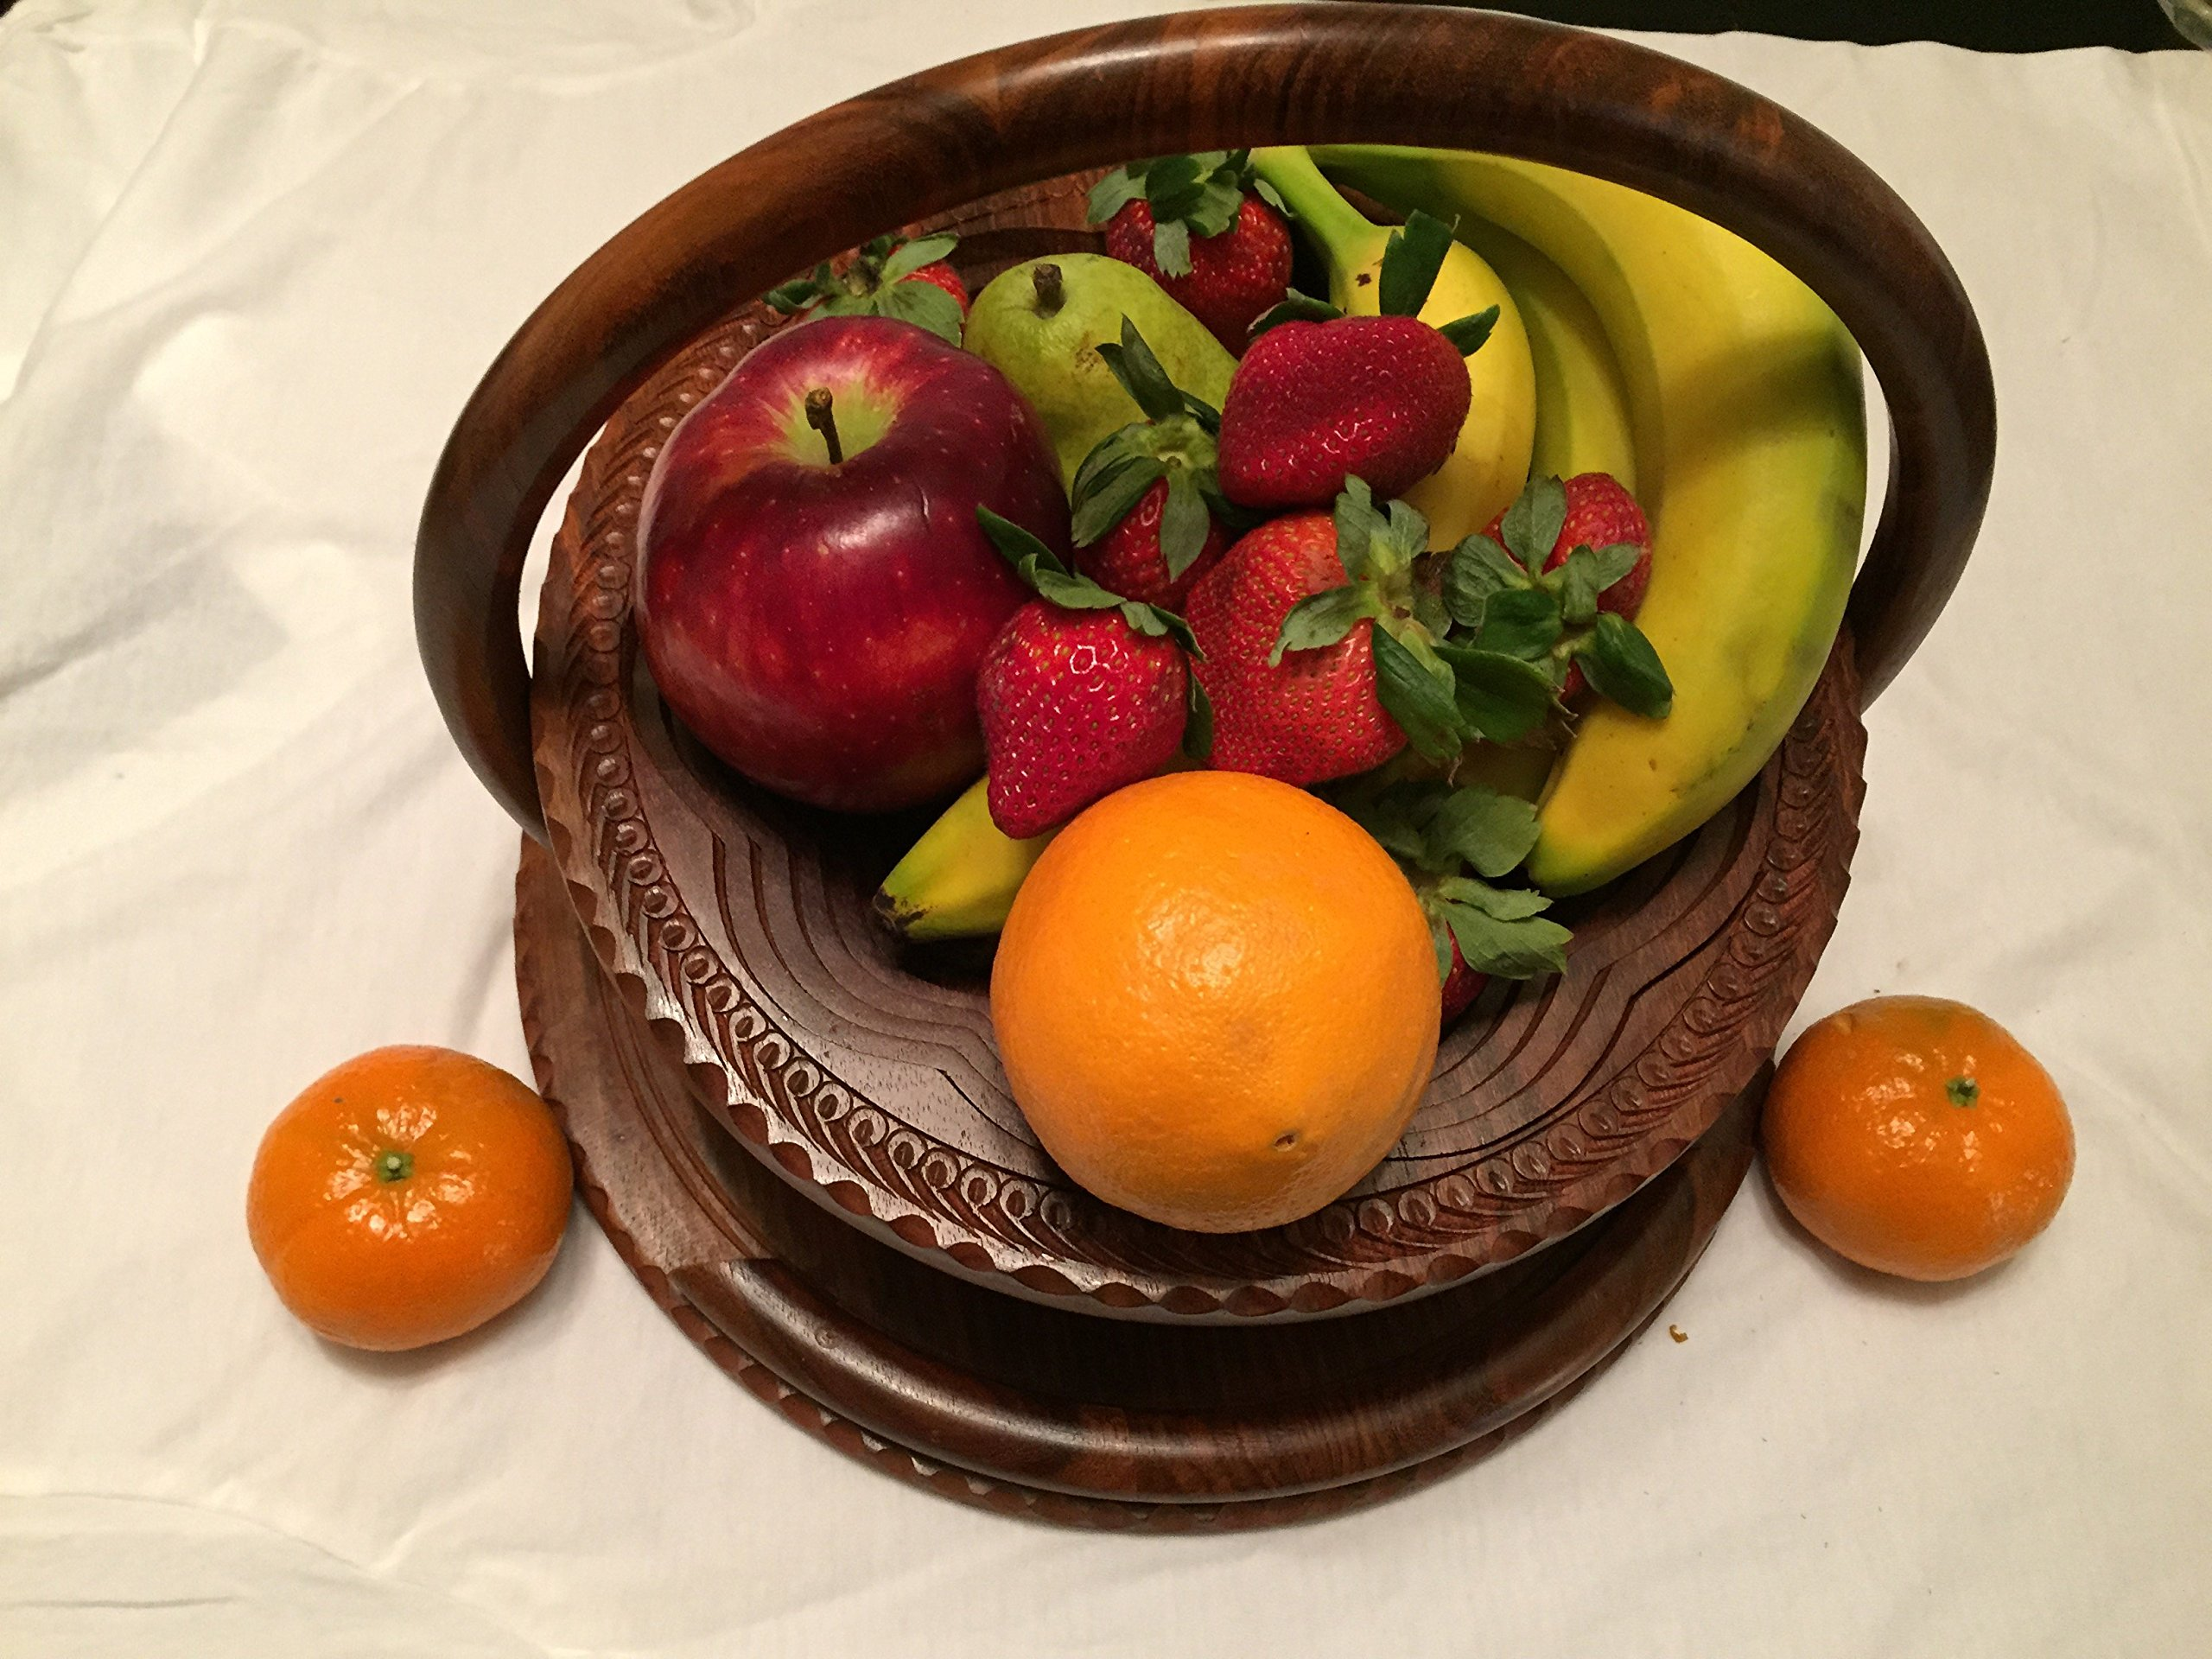 Special DAY Wedding LOVE Gift Wooden Collapsible Fruit Basket (12''x12''x12'') Elegant Wooden Foldable Fruit Basket Circular Hand Crafted Valentine Day Gift